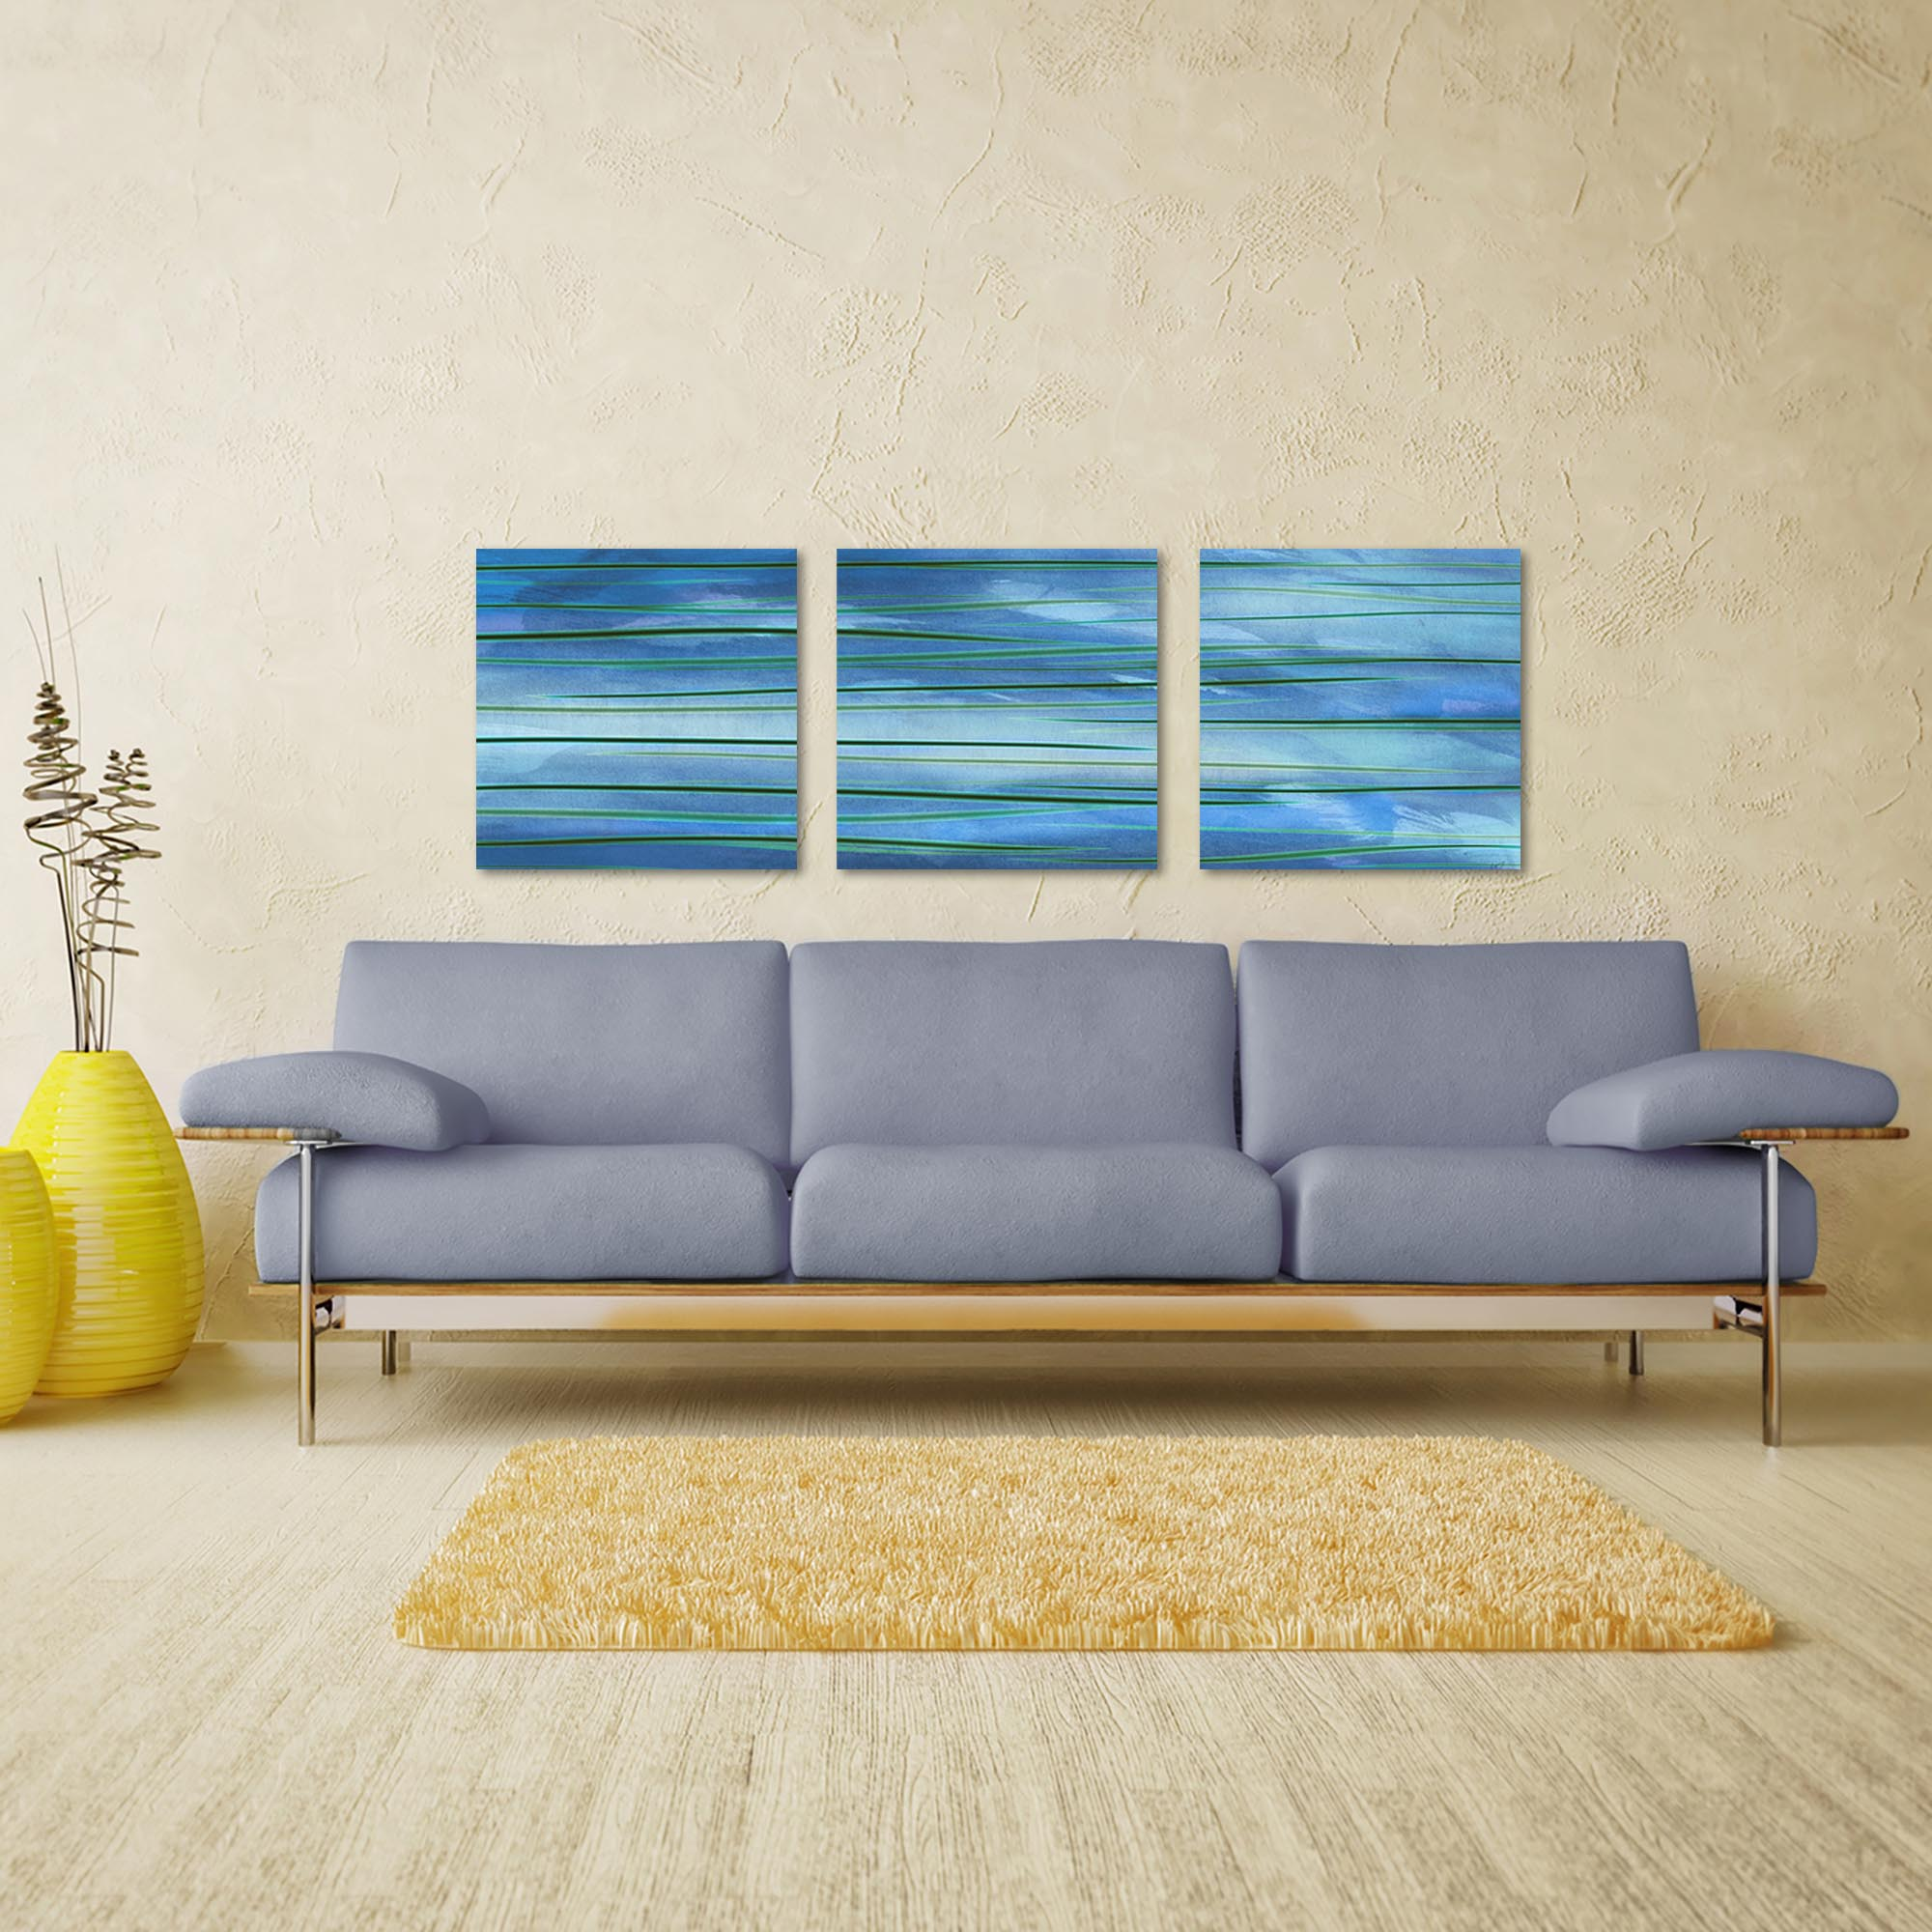 Ocean View Triptych Large 70x22in. Metal or Acrylic Abstract Decor - Lifestyle View